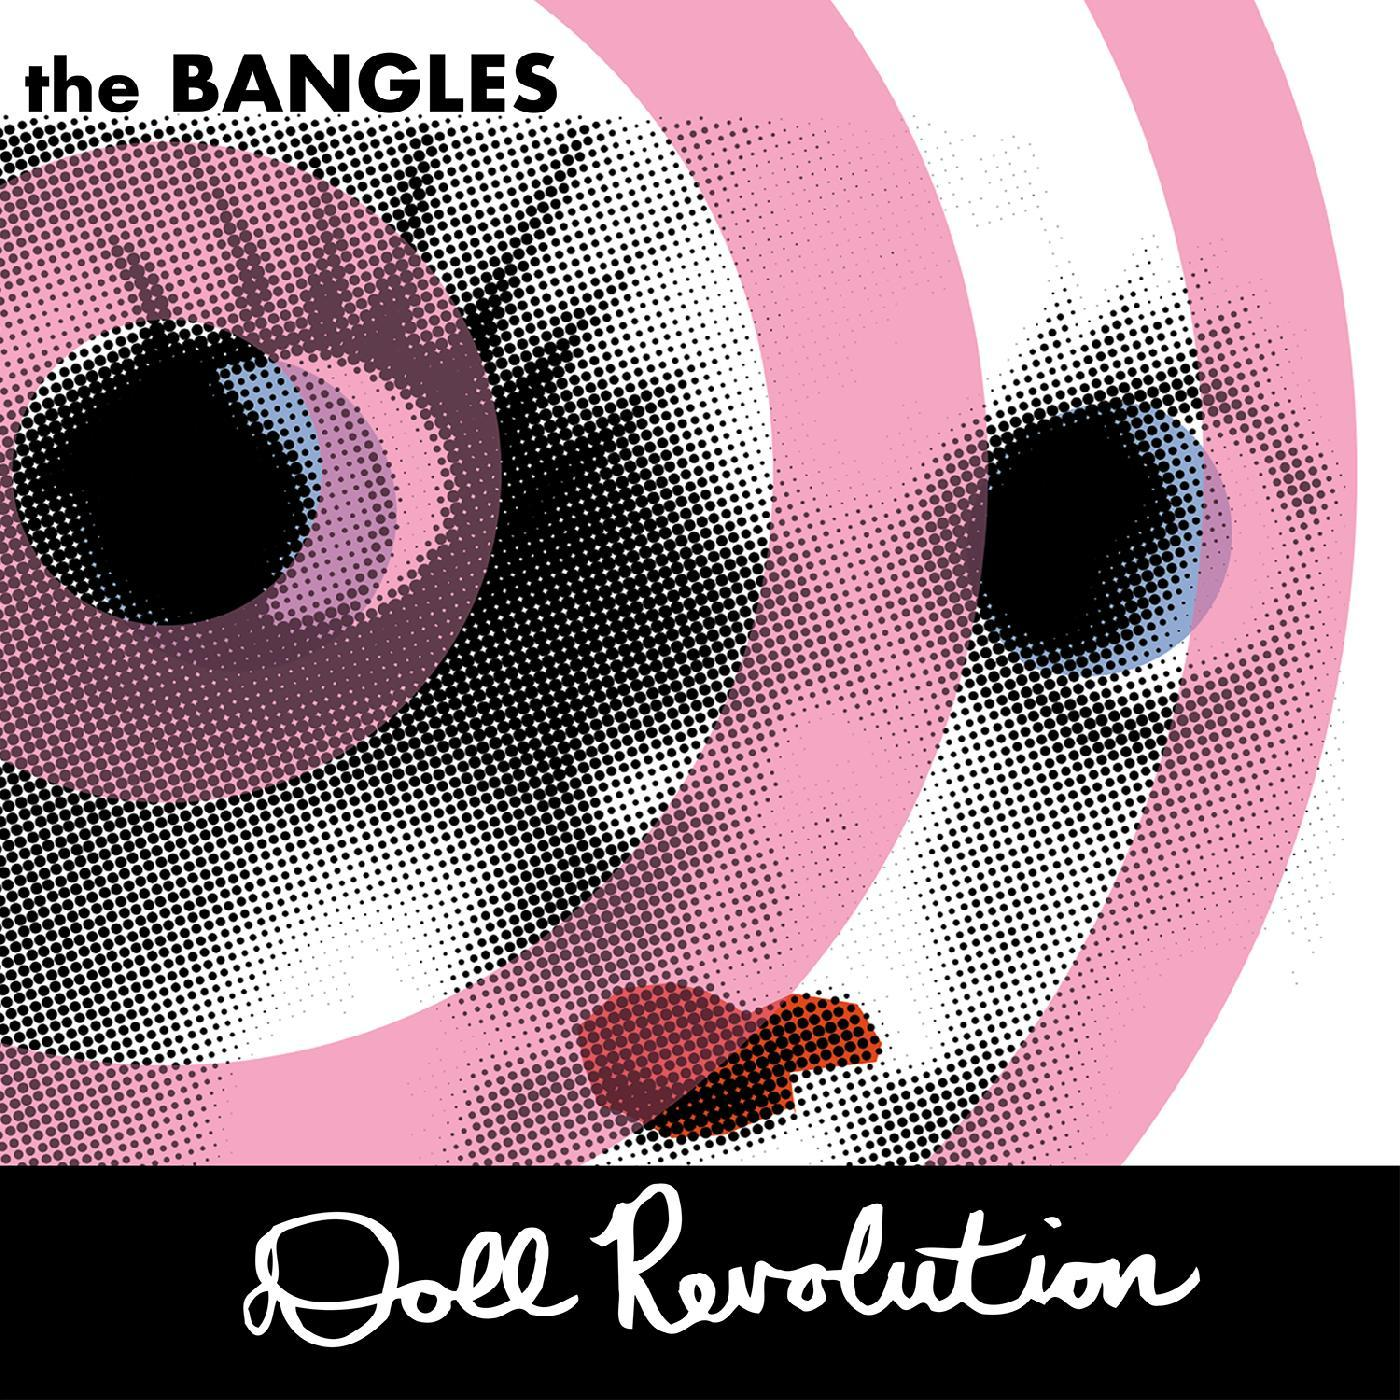 The Bangles - Doll Revolution [RSD BF 2020]